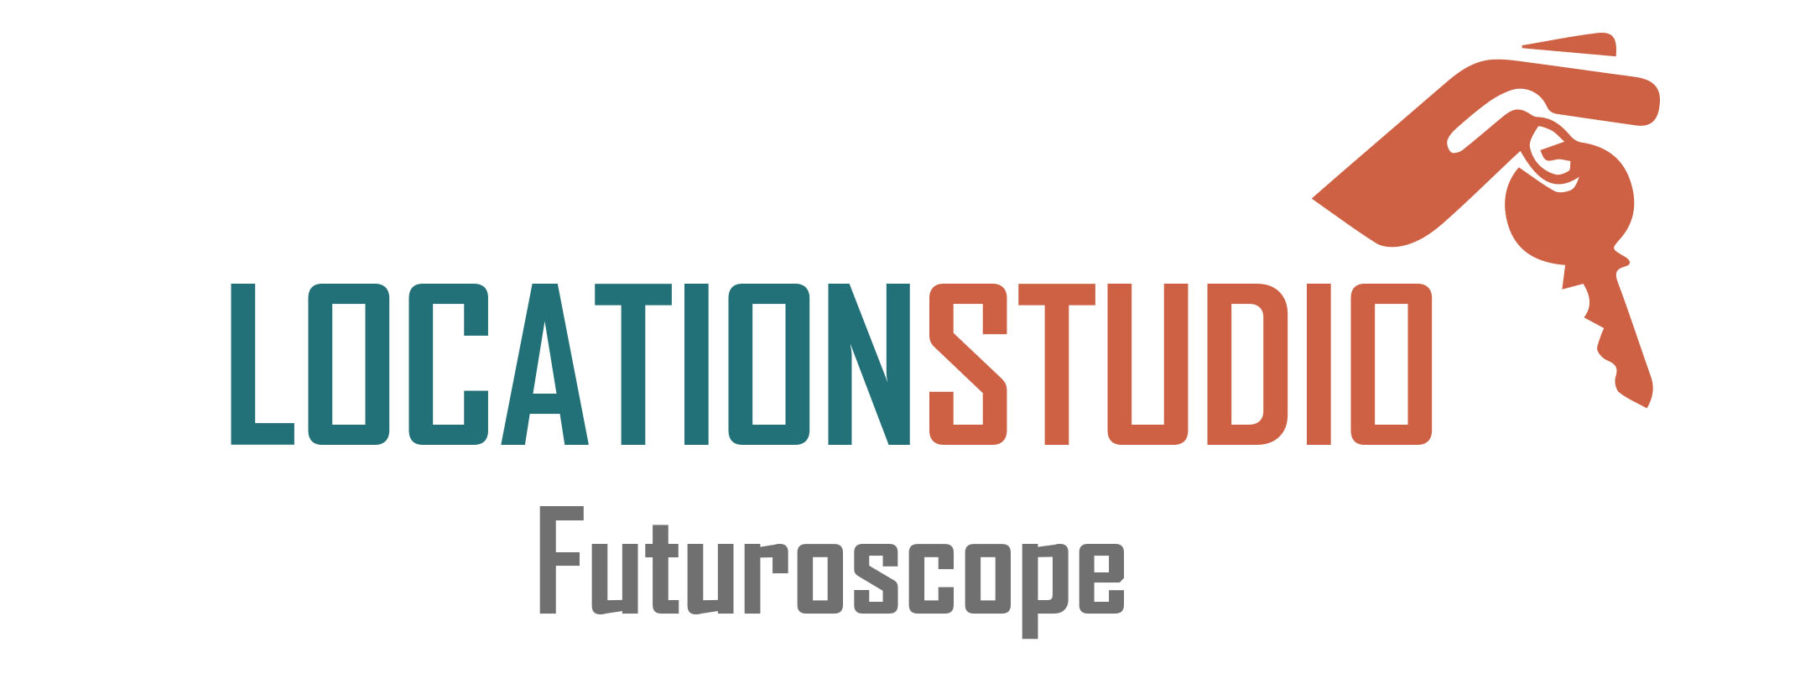 Location studio Futuroscope